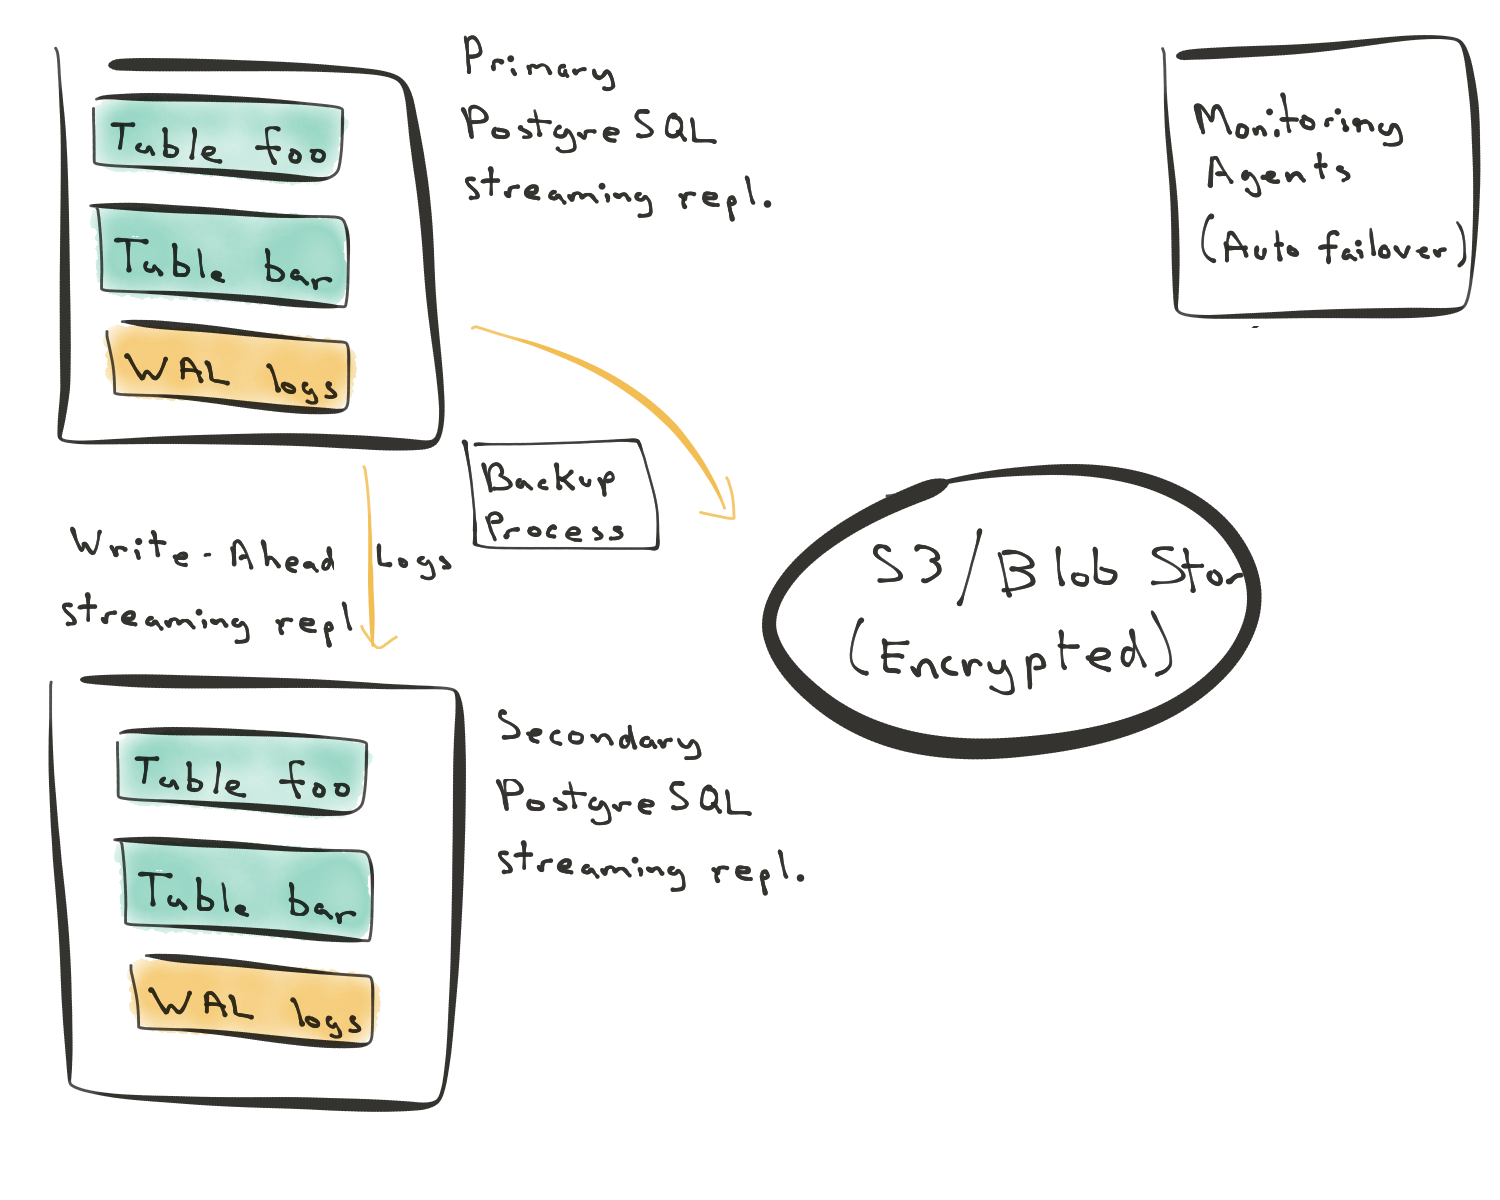 Figure 1 - Streaming replication in Postgres, with local storage